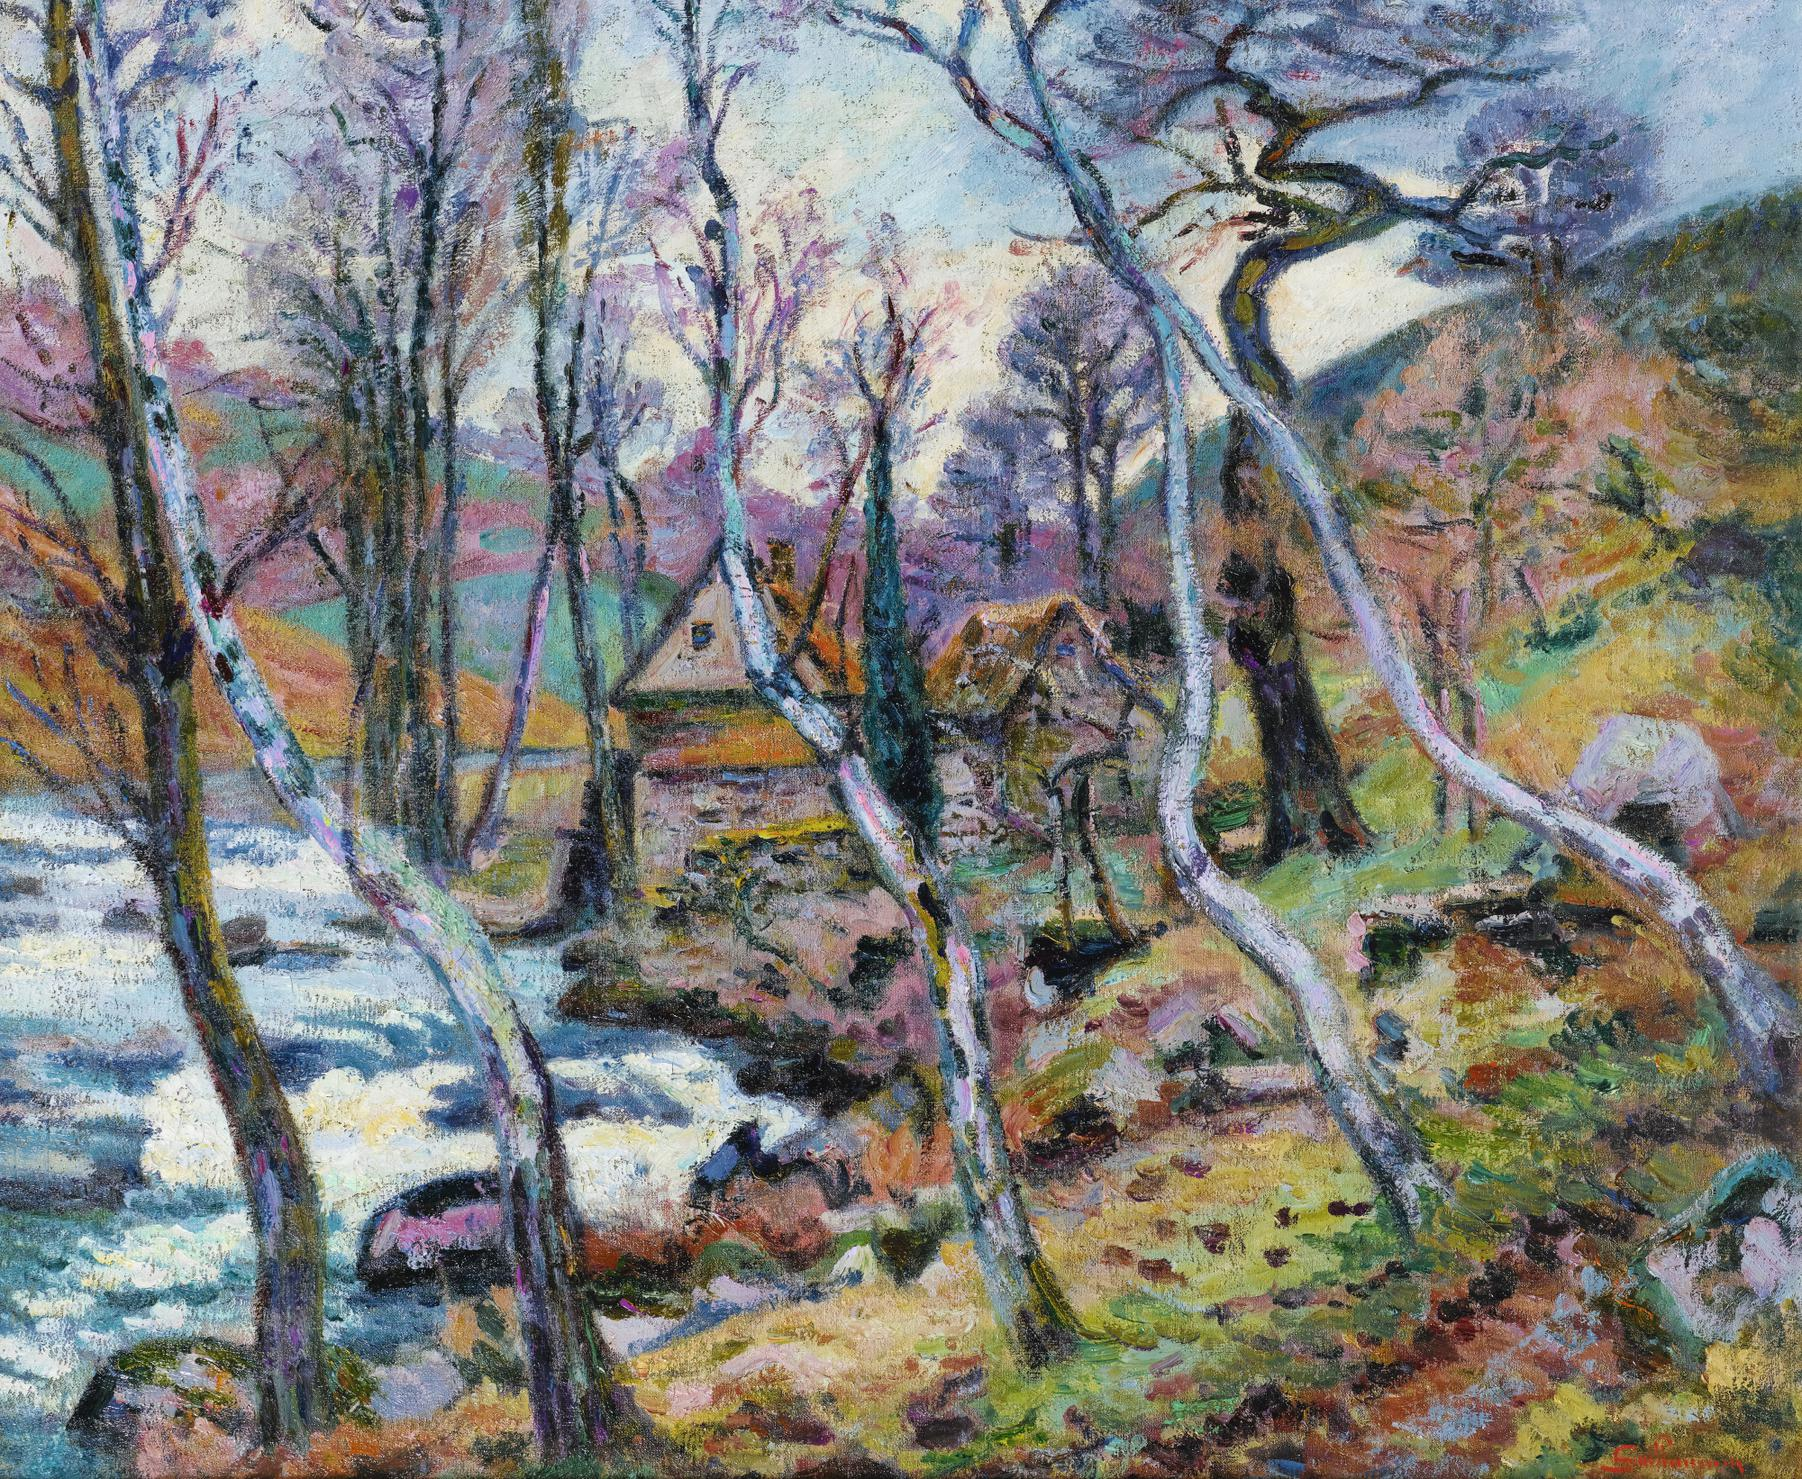 Jean-Baptiste Armand Guillaumin-Le Moulin Bouchardon, Creuse-1905